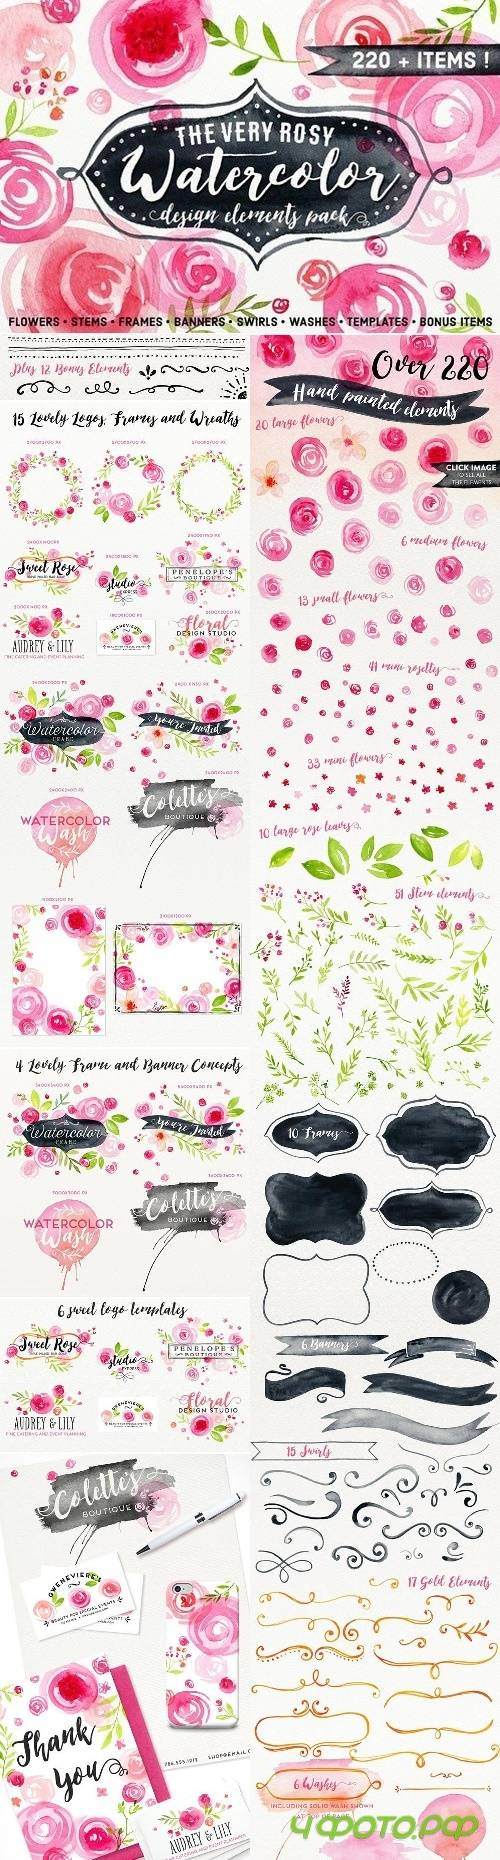 Hand Painted Watercolor Floral Pack 2459000